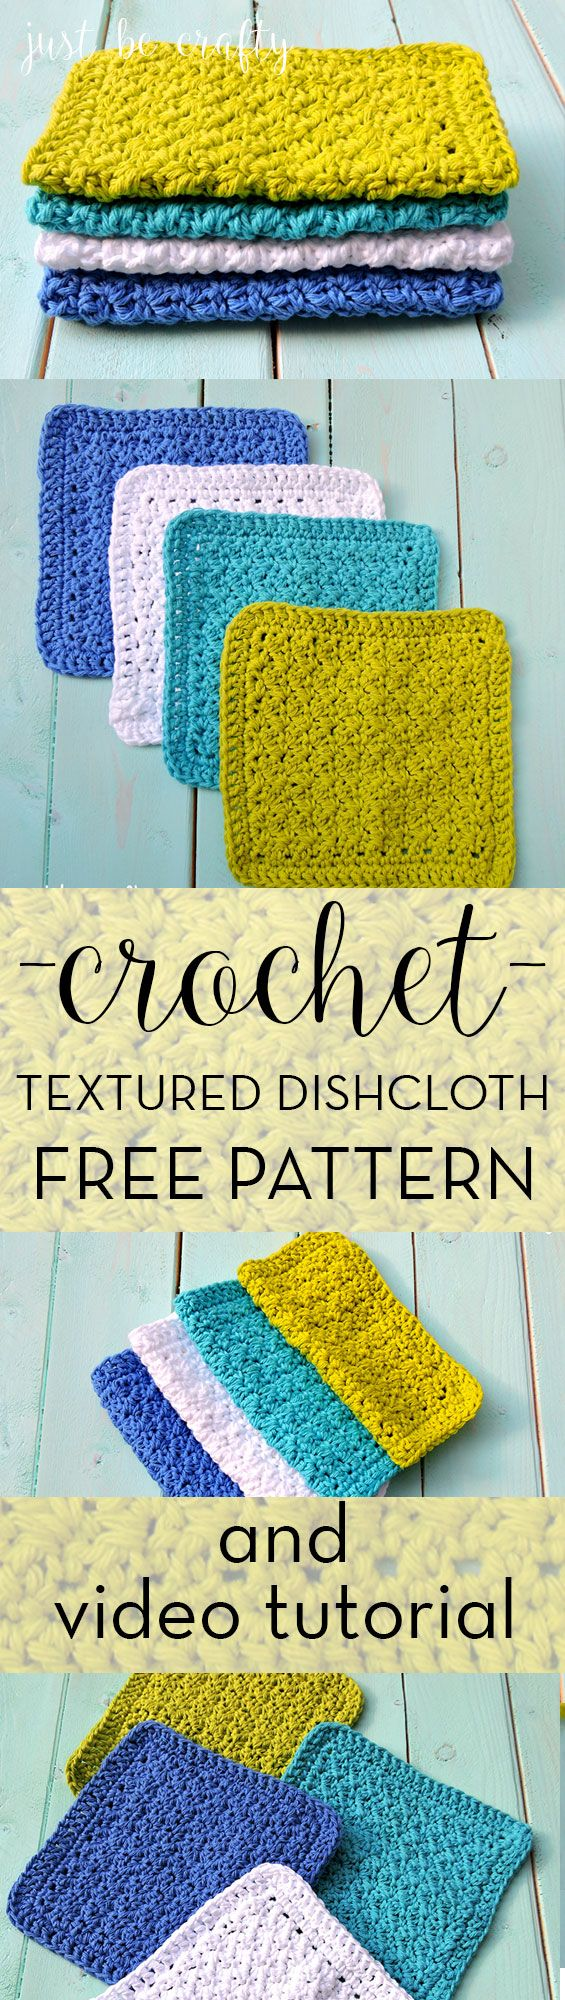 Crochet Textured Dishcloth Pattern and video tutorial by Just Be Crafty